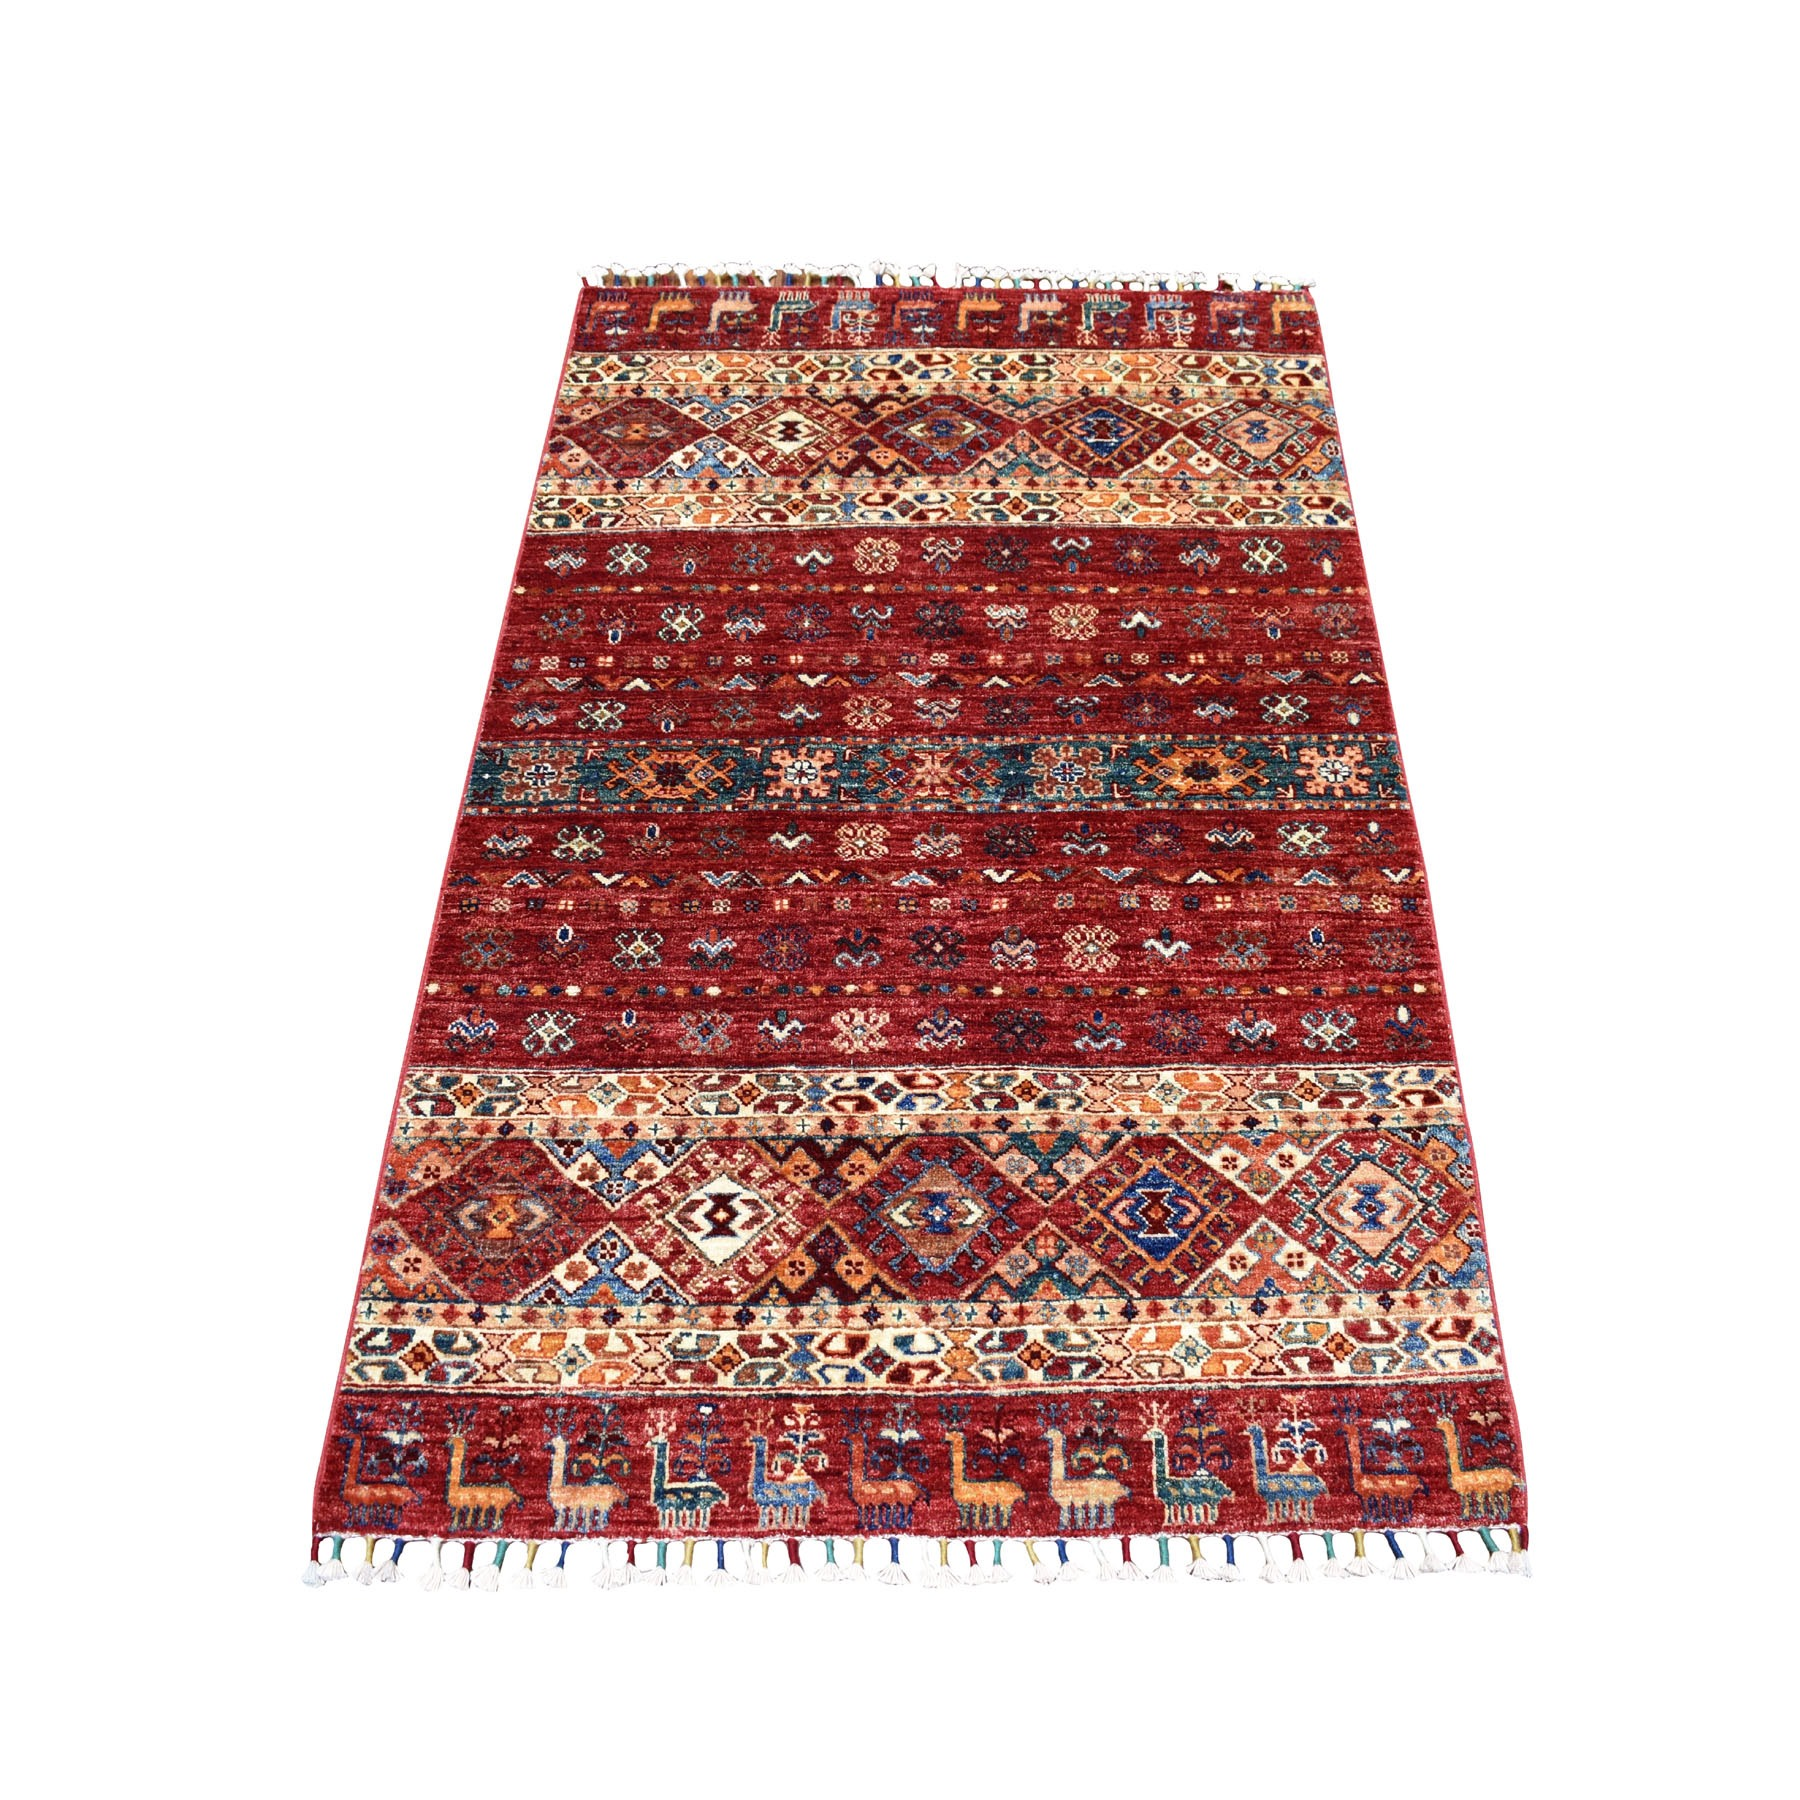 "3'4""x5' Khorjin Design Red Super Kazak Pure Wool Hand Woven Oriental Rug"